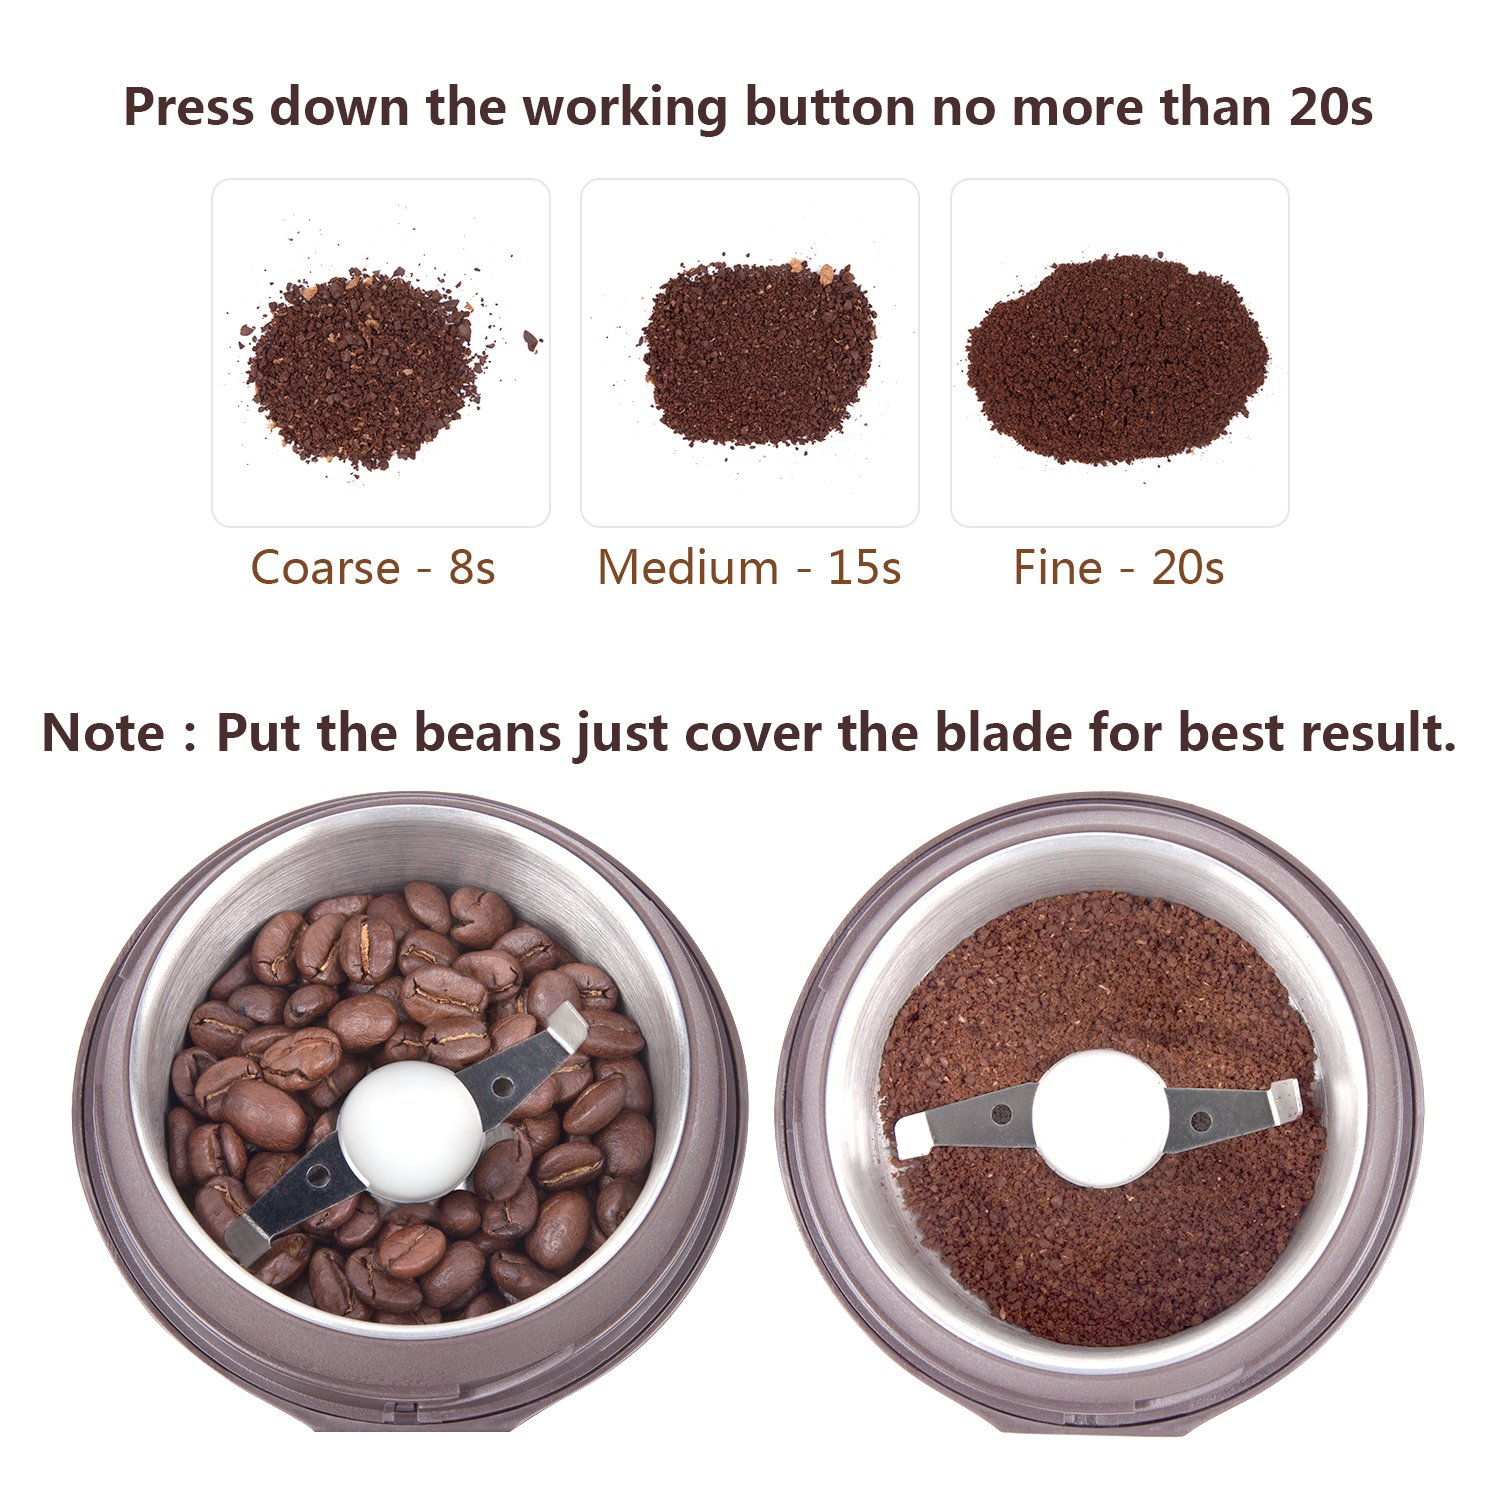 AMOVEE Electric Coffee Grinder with Stainless Steel Blades for Coffee Beans, Spice, Nuts, Herbs, Pepper and Grains, Brown, 200W, Cleaning Brush Included by AmoVee (Image #5)